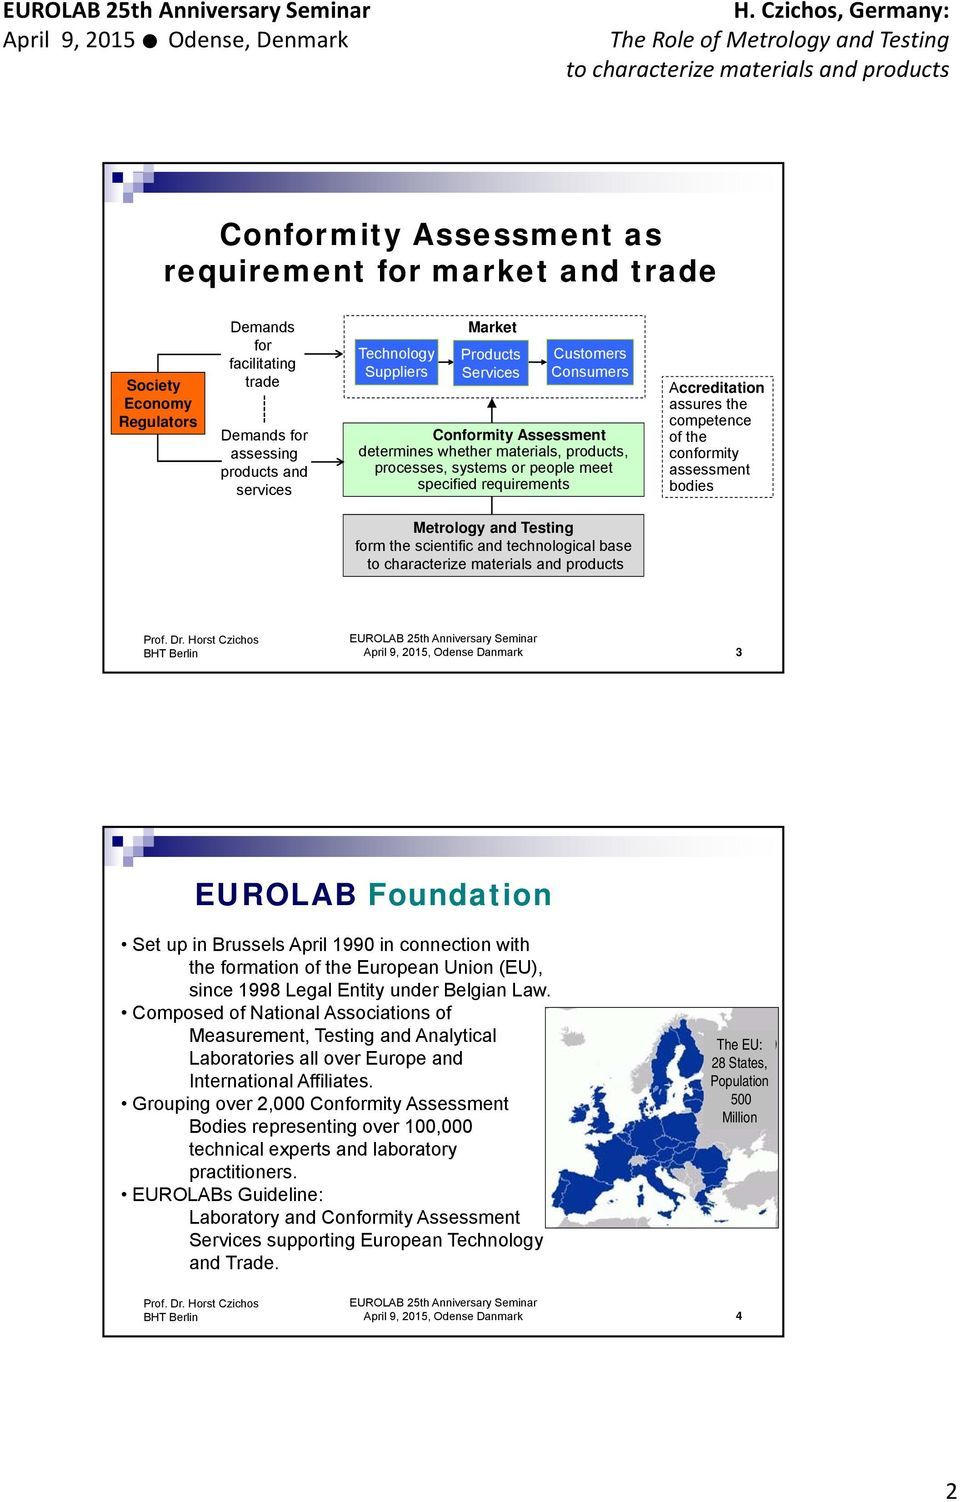 conformity assessment bodies Metrology and Testing form the scientific and technological base April 9, 2015, Odense Danmark 3 EUROLAB Foundation Set up in Brussels April 1990 in connection with the